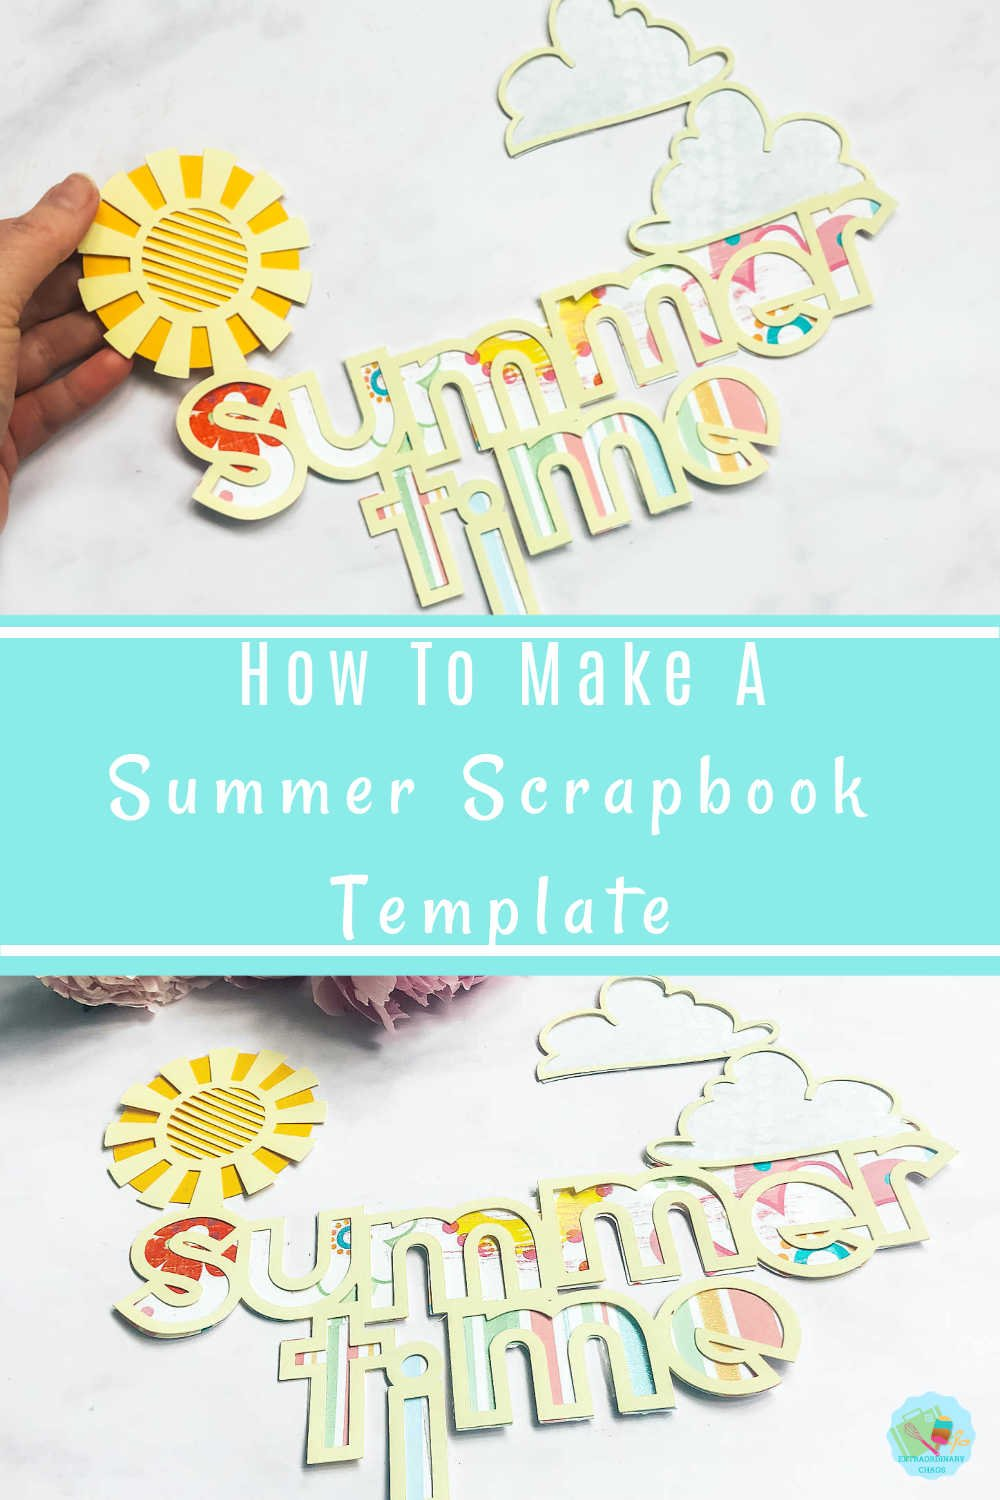 How to make a summer layout scrapbook template in Cricut Design Space and summer titles ideas